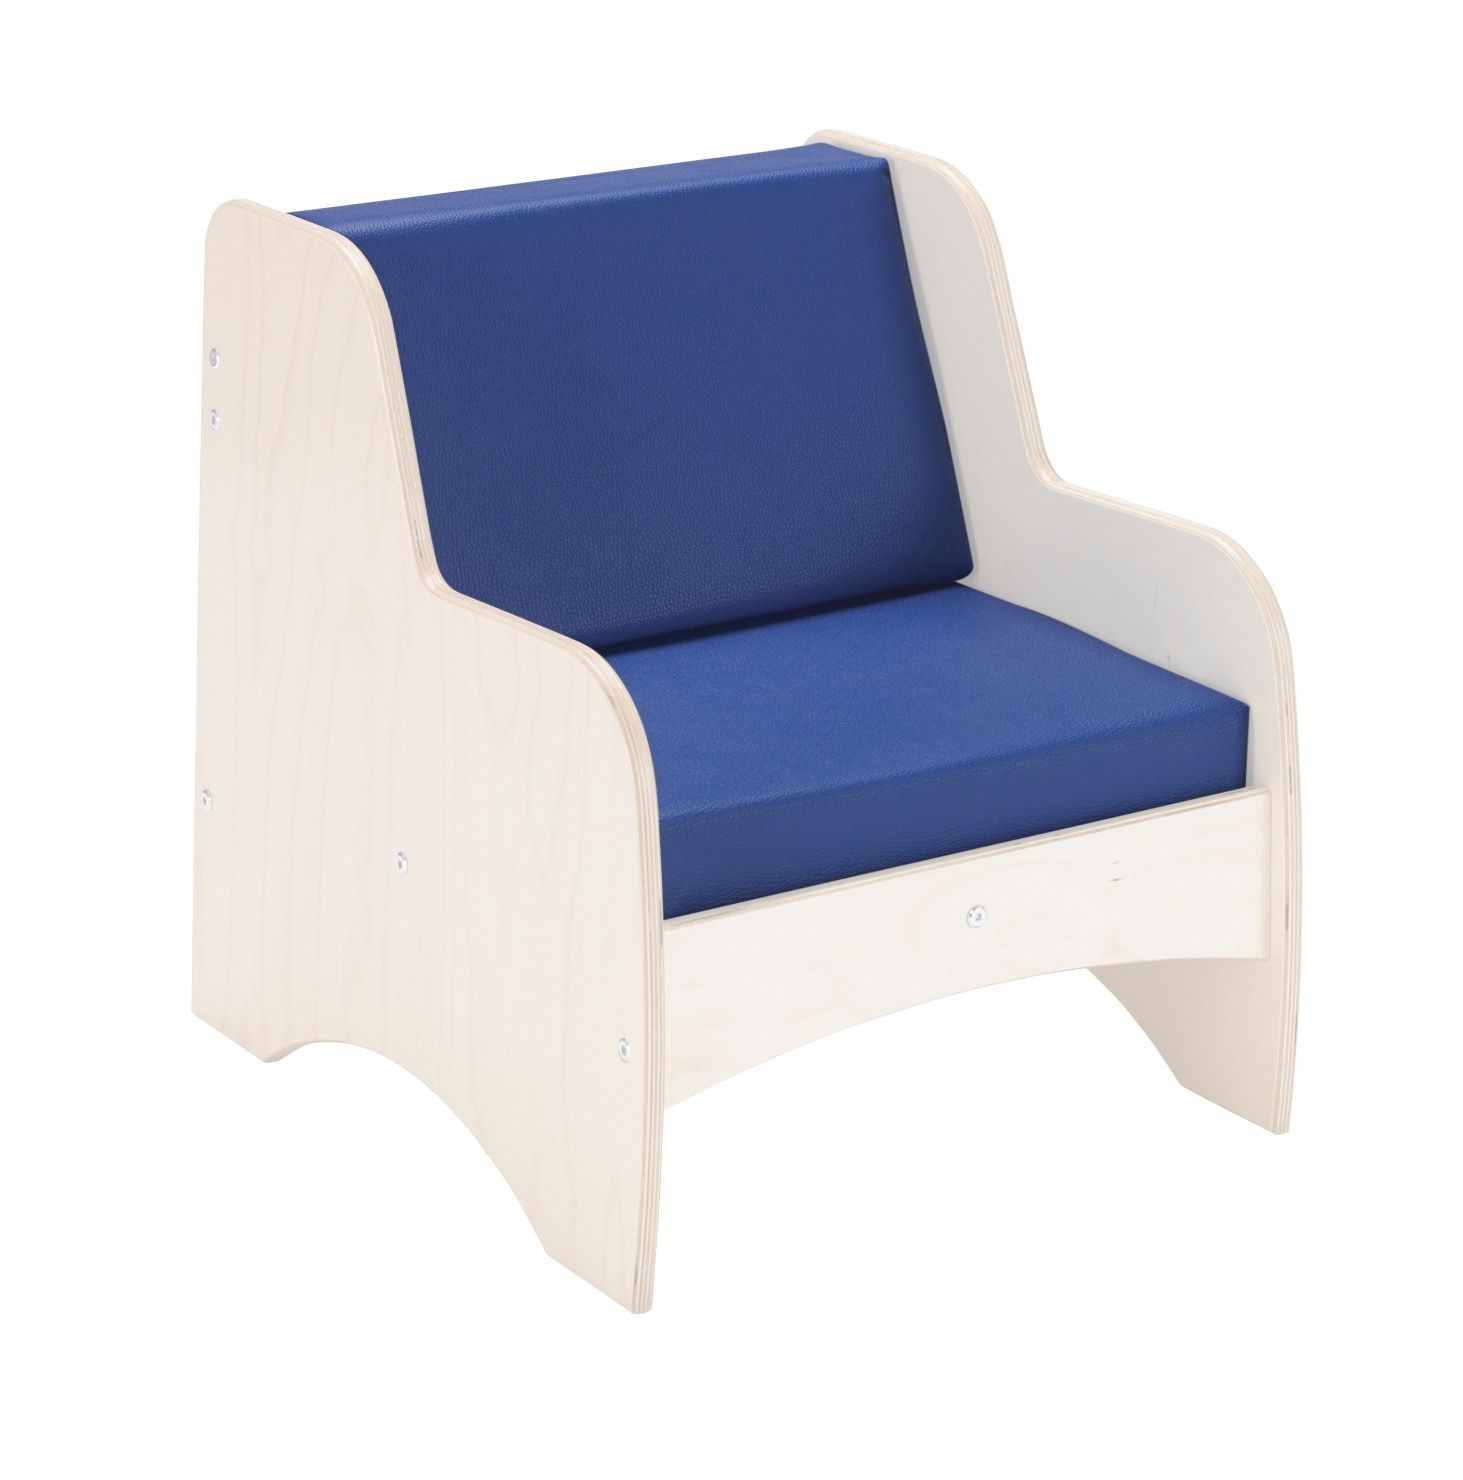 Childcraft Chair Replacement Cushions Blue School Specialty Canada